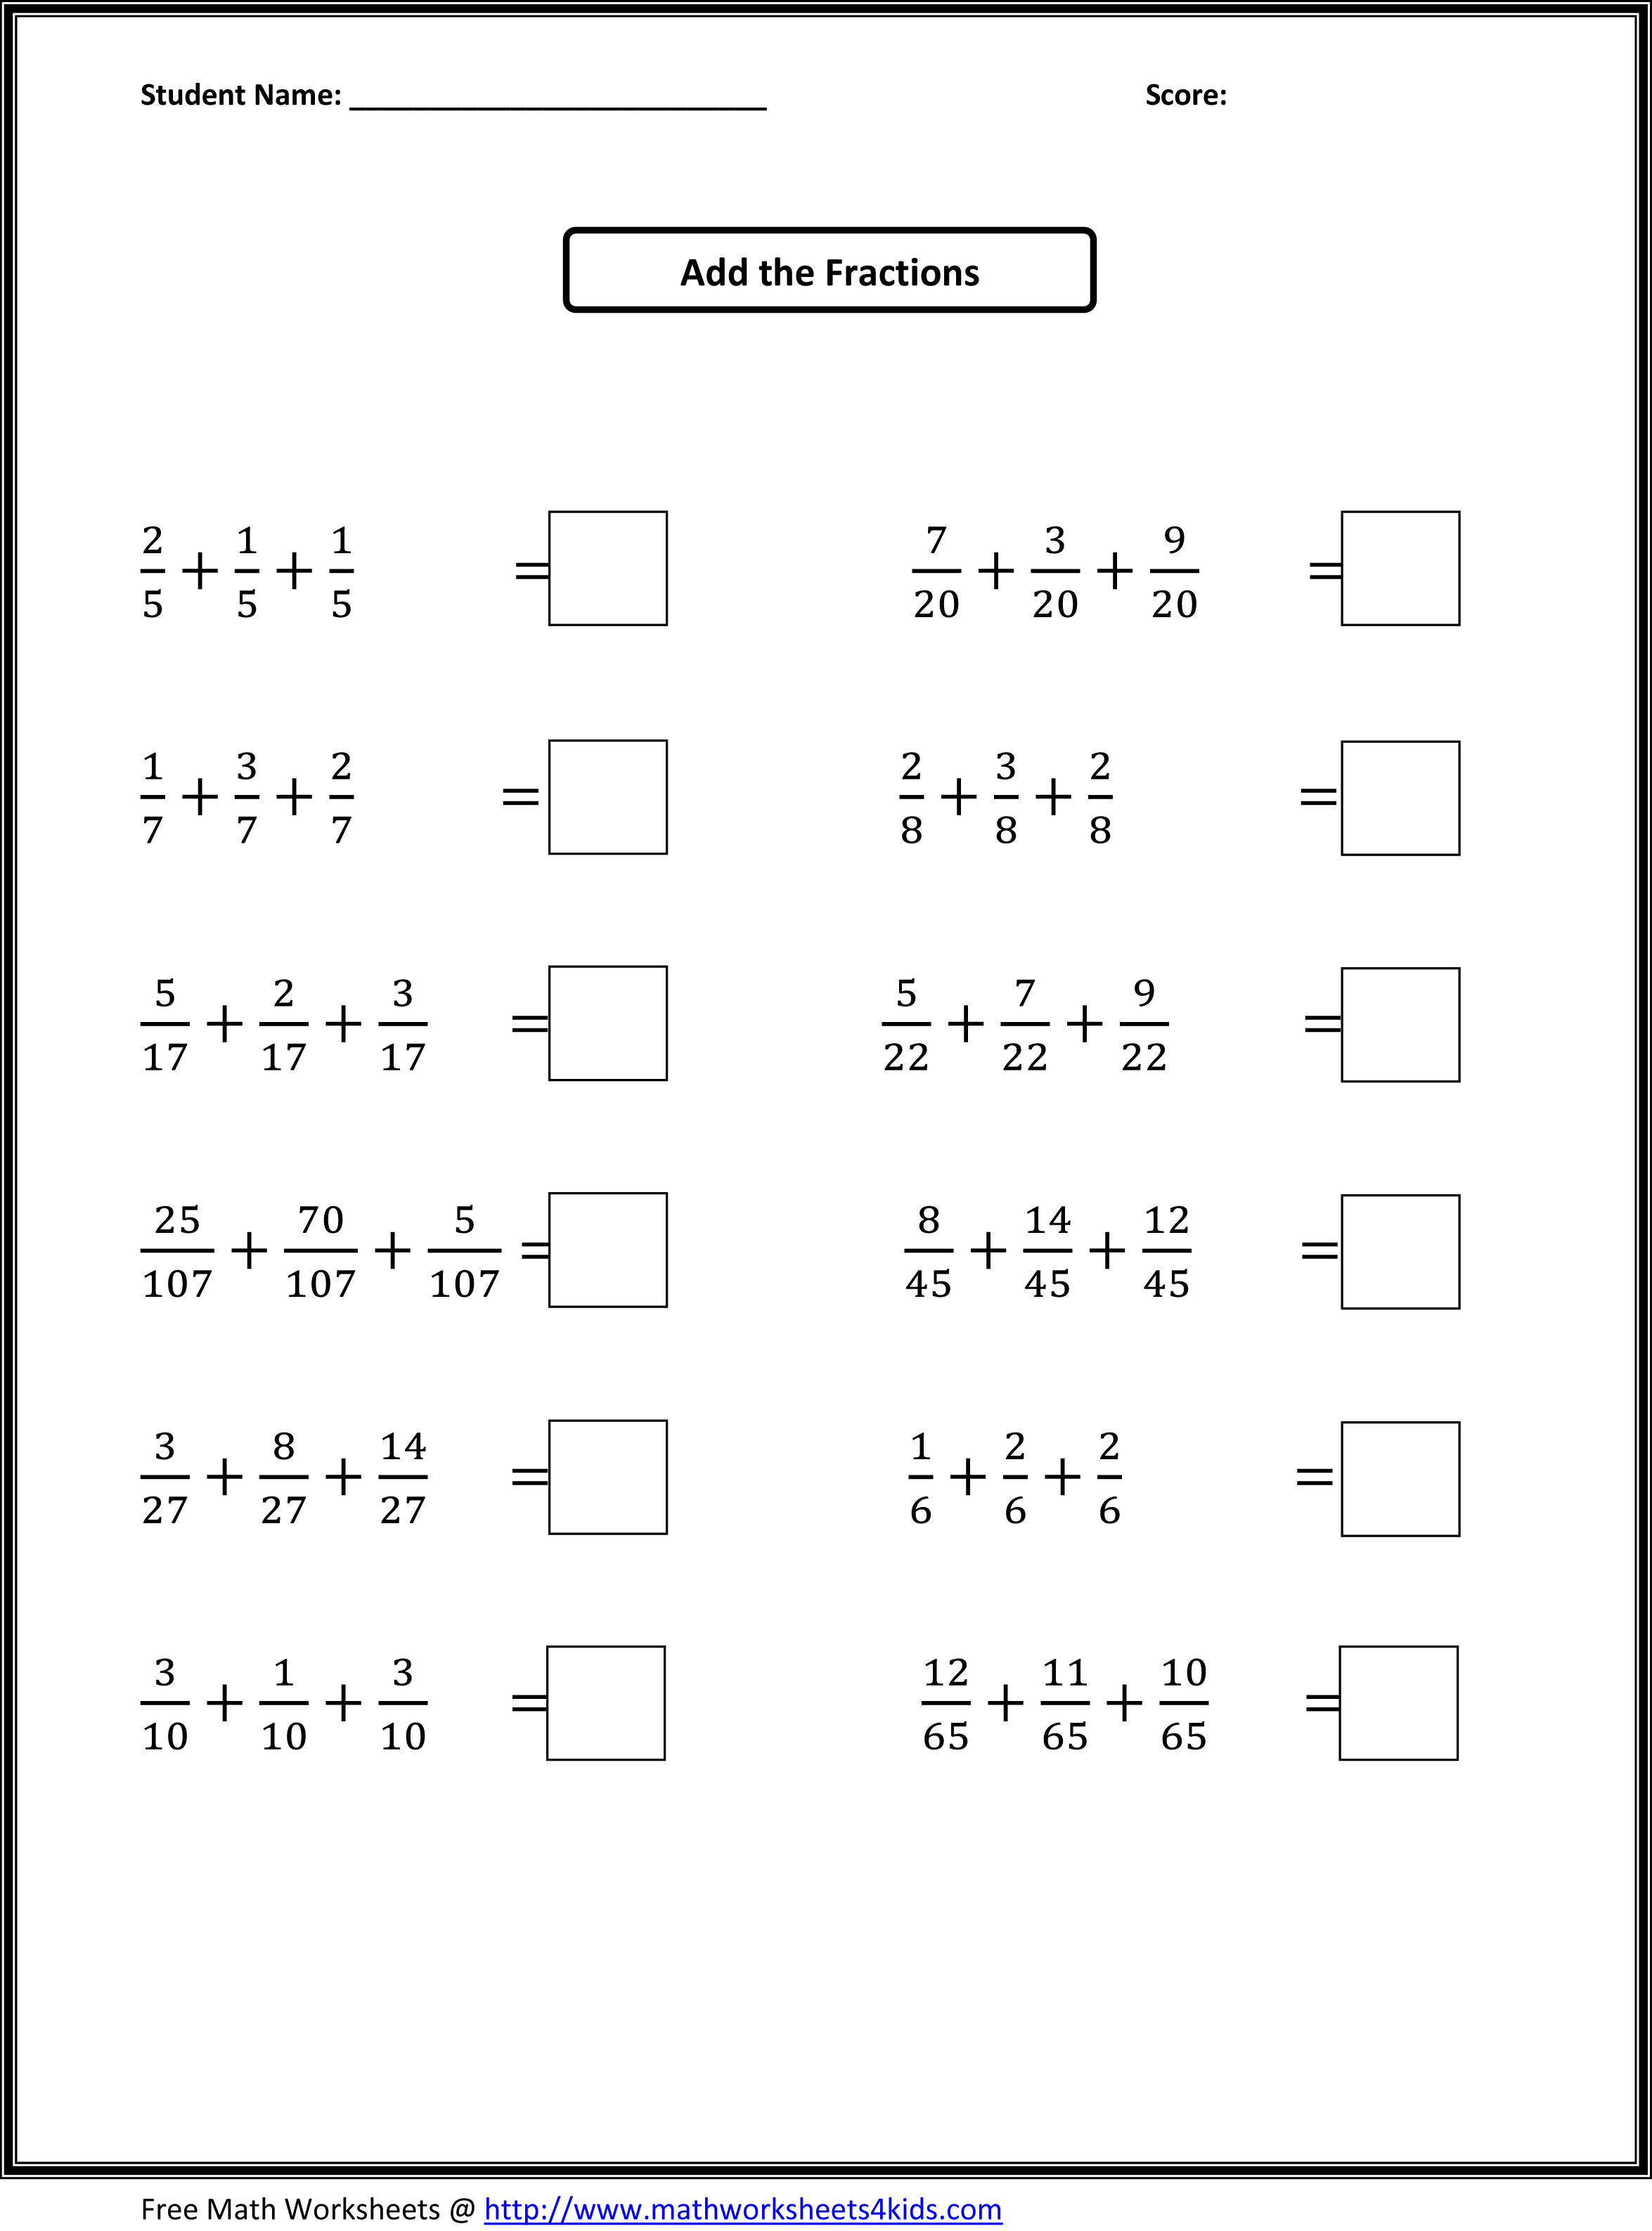 Maths Worksheets On Fractions For Grade 5 Worksheet Kids – Fraction Worksheets Grade 5